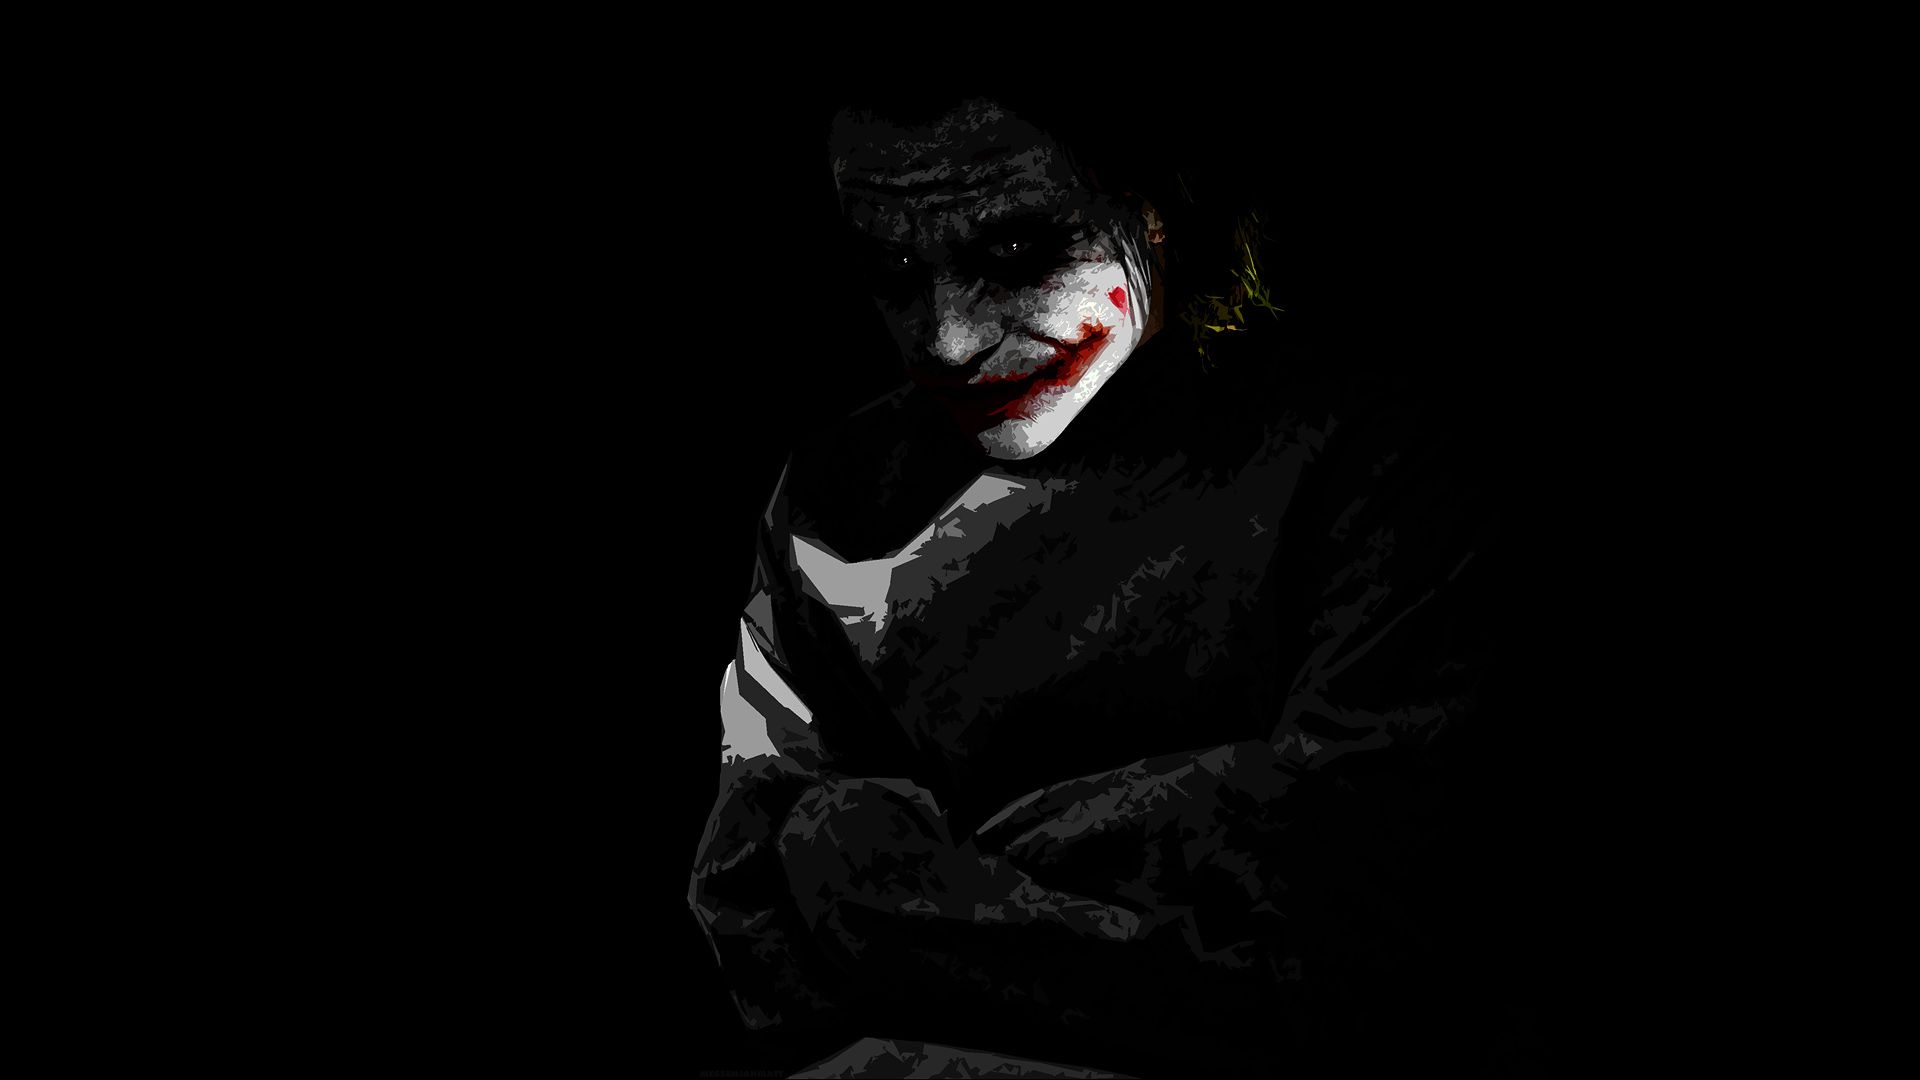 Amazing joker hd wallpapers p About Wallpapers Image with uk